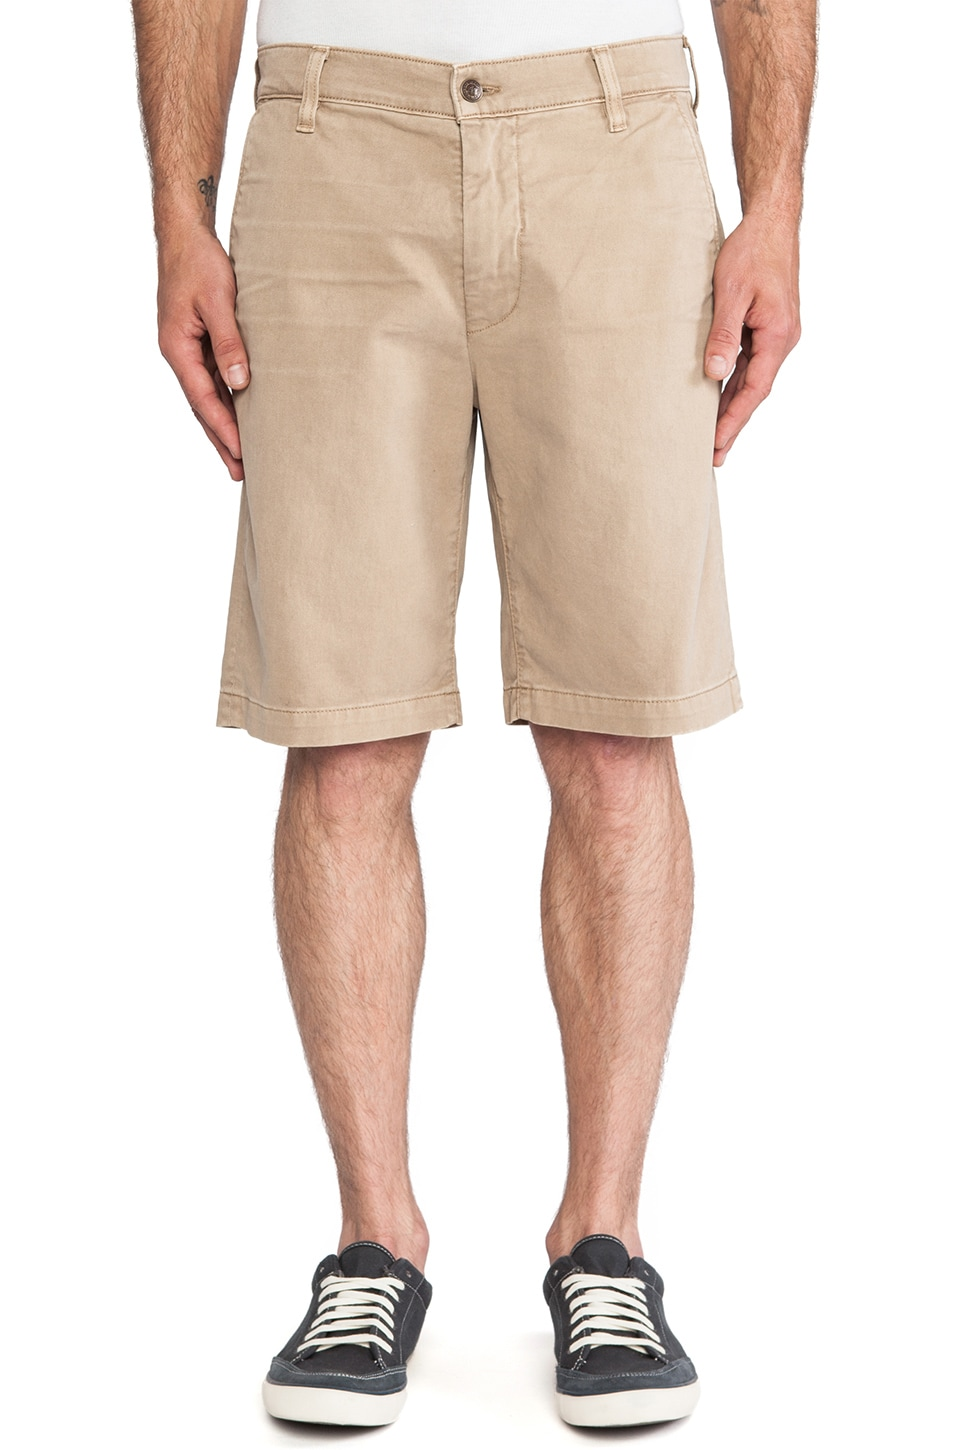 7 For All Mankind Twill Chino Short in Khaki